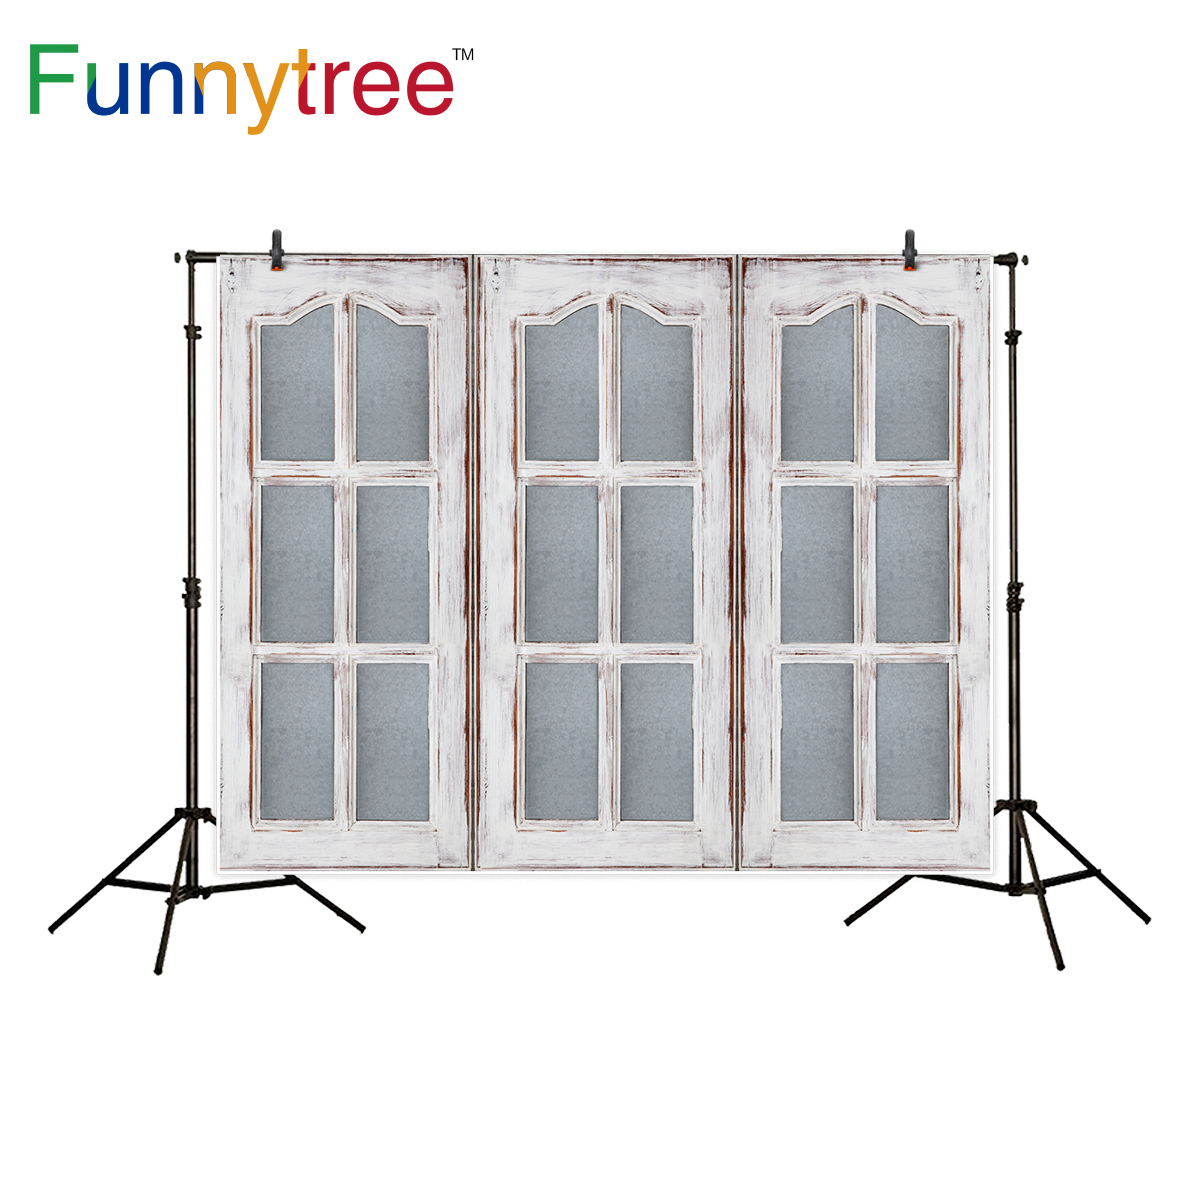 Funnytree photography backdrop wood window vintage decoration background photo studio photocall new photo prop